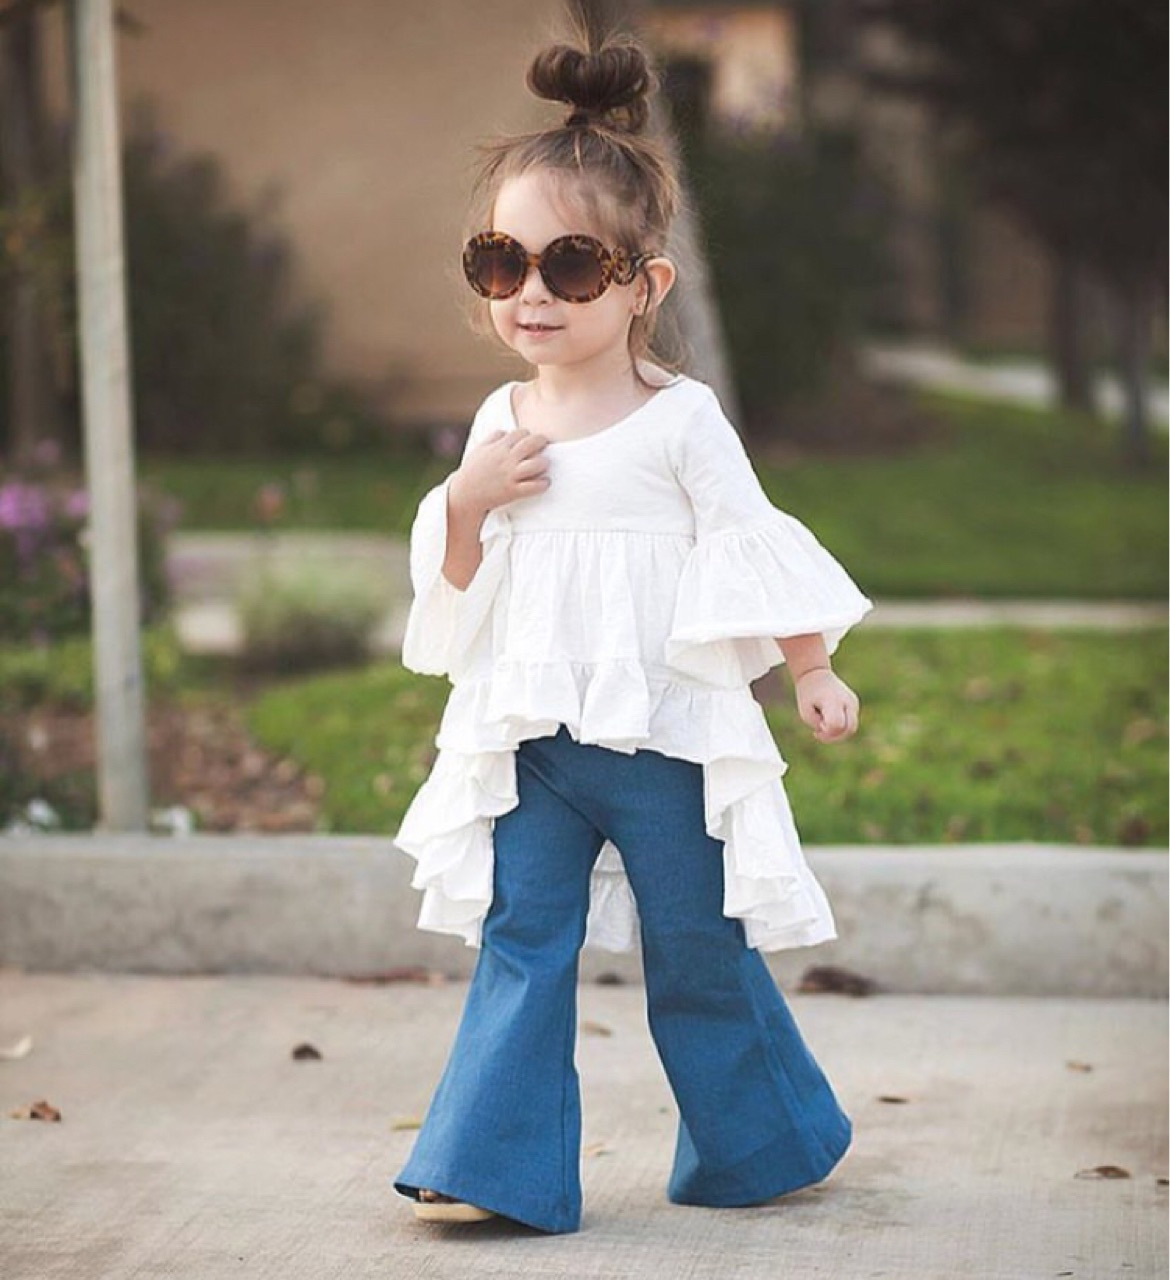 41beb12f3a 2pc Toddler Kids Baby Girls Outfits Cotton tops+Denim Flared pants Clothes  Sets. Check out my other items! undefined undefined